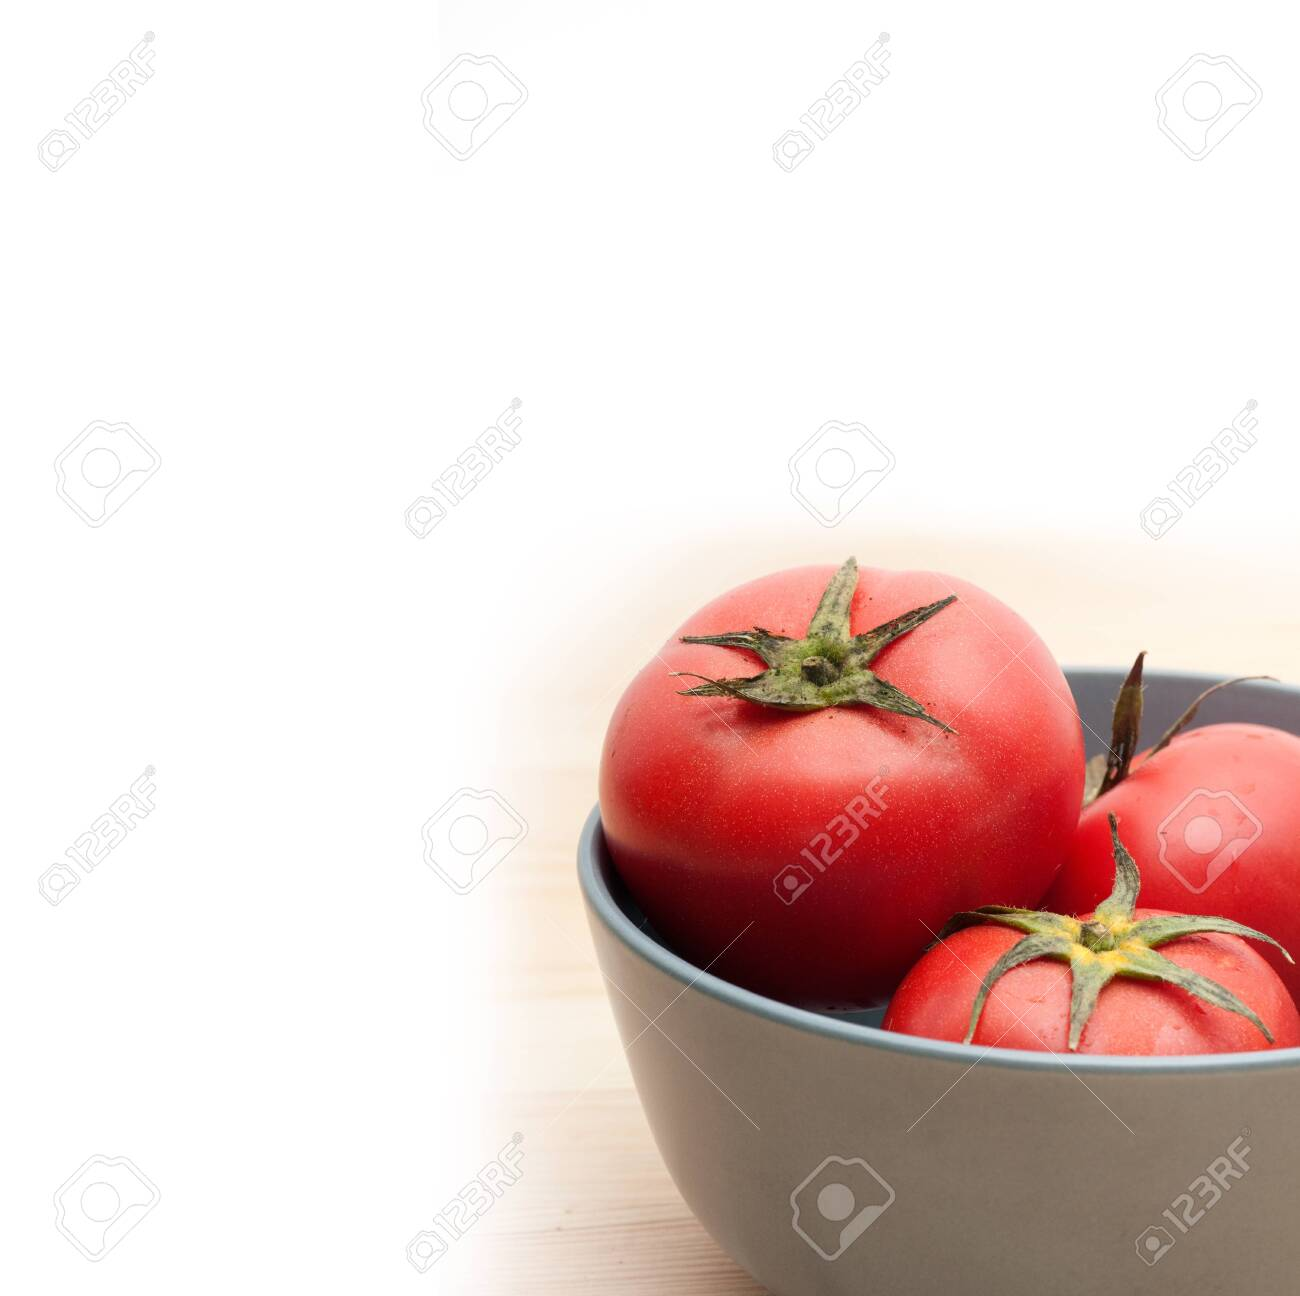 fresh ripe tomatoes on a blue bowl over pine wood table Stock Photo - 15226435